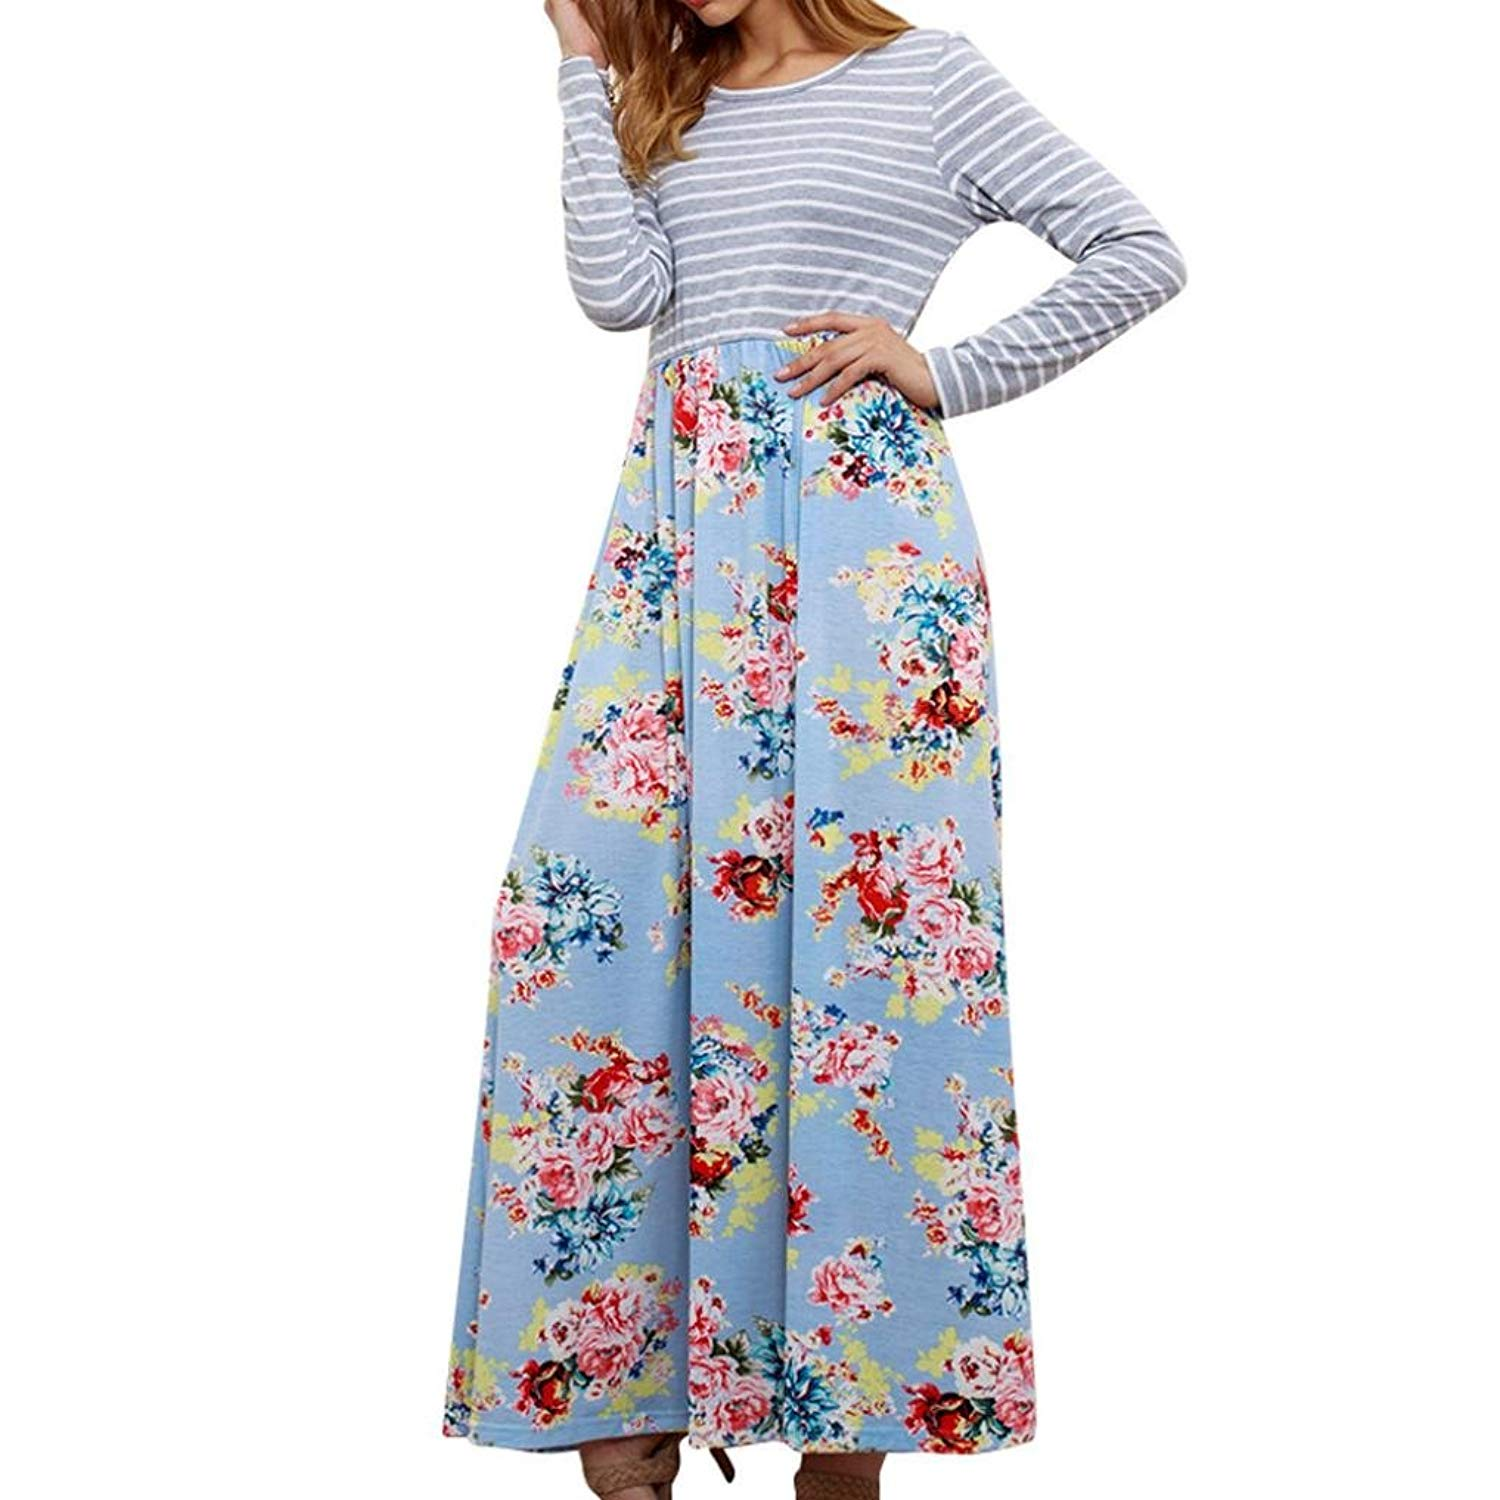 1c55e99dc45 Get Quotations · Women s Floral Print Casual Long Sleeve A-line Loose  T-Shirt Long Maxi Dresses